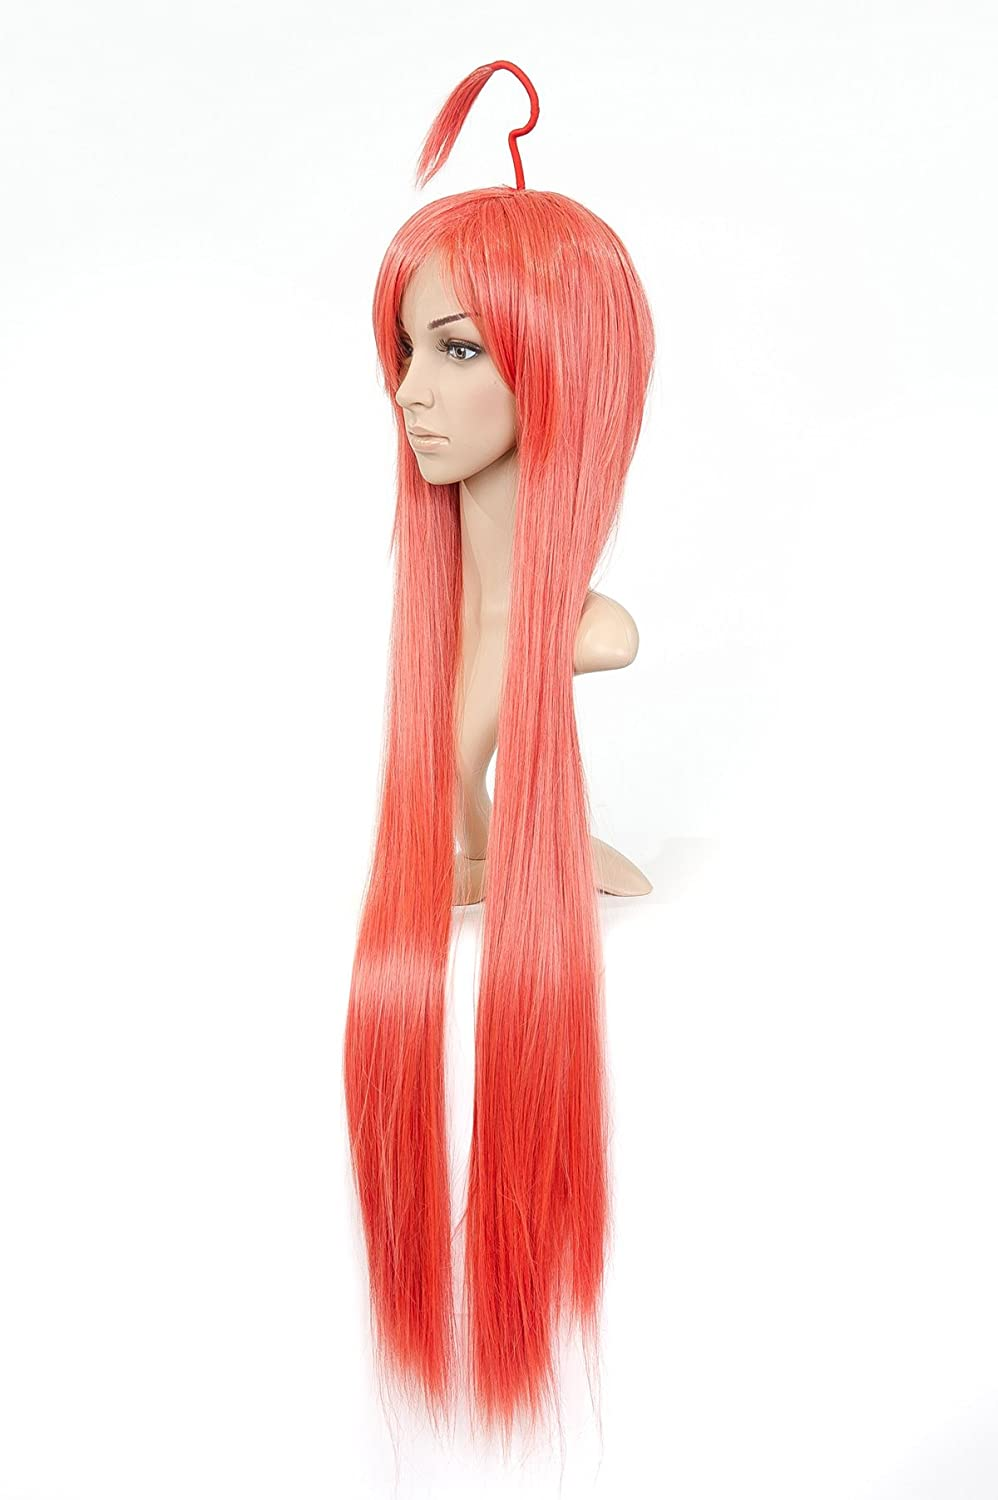 Gladiola Orange rouge Long longueur Anime Costume Wig